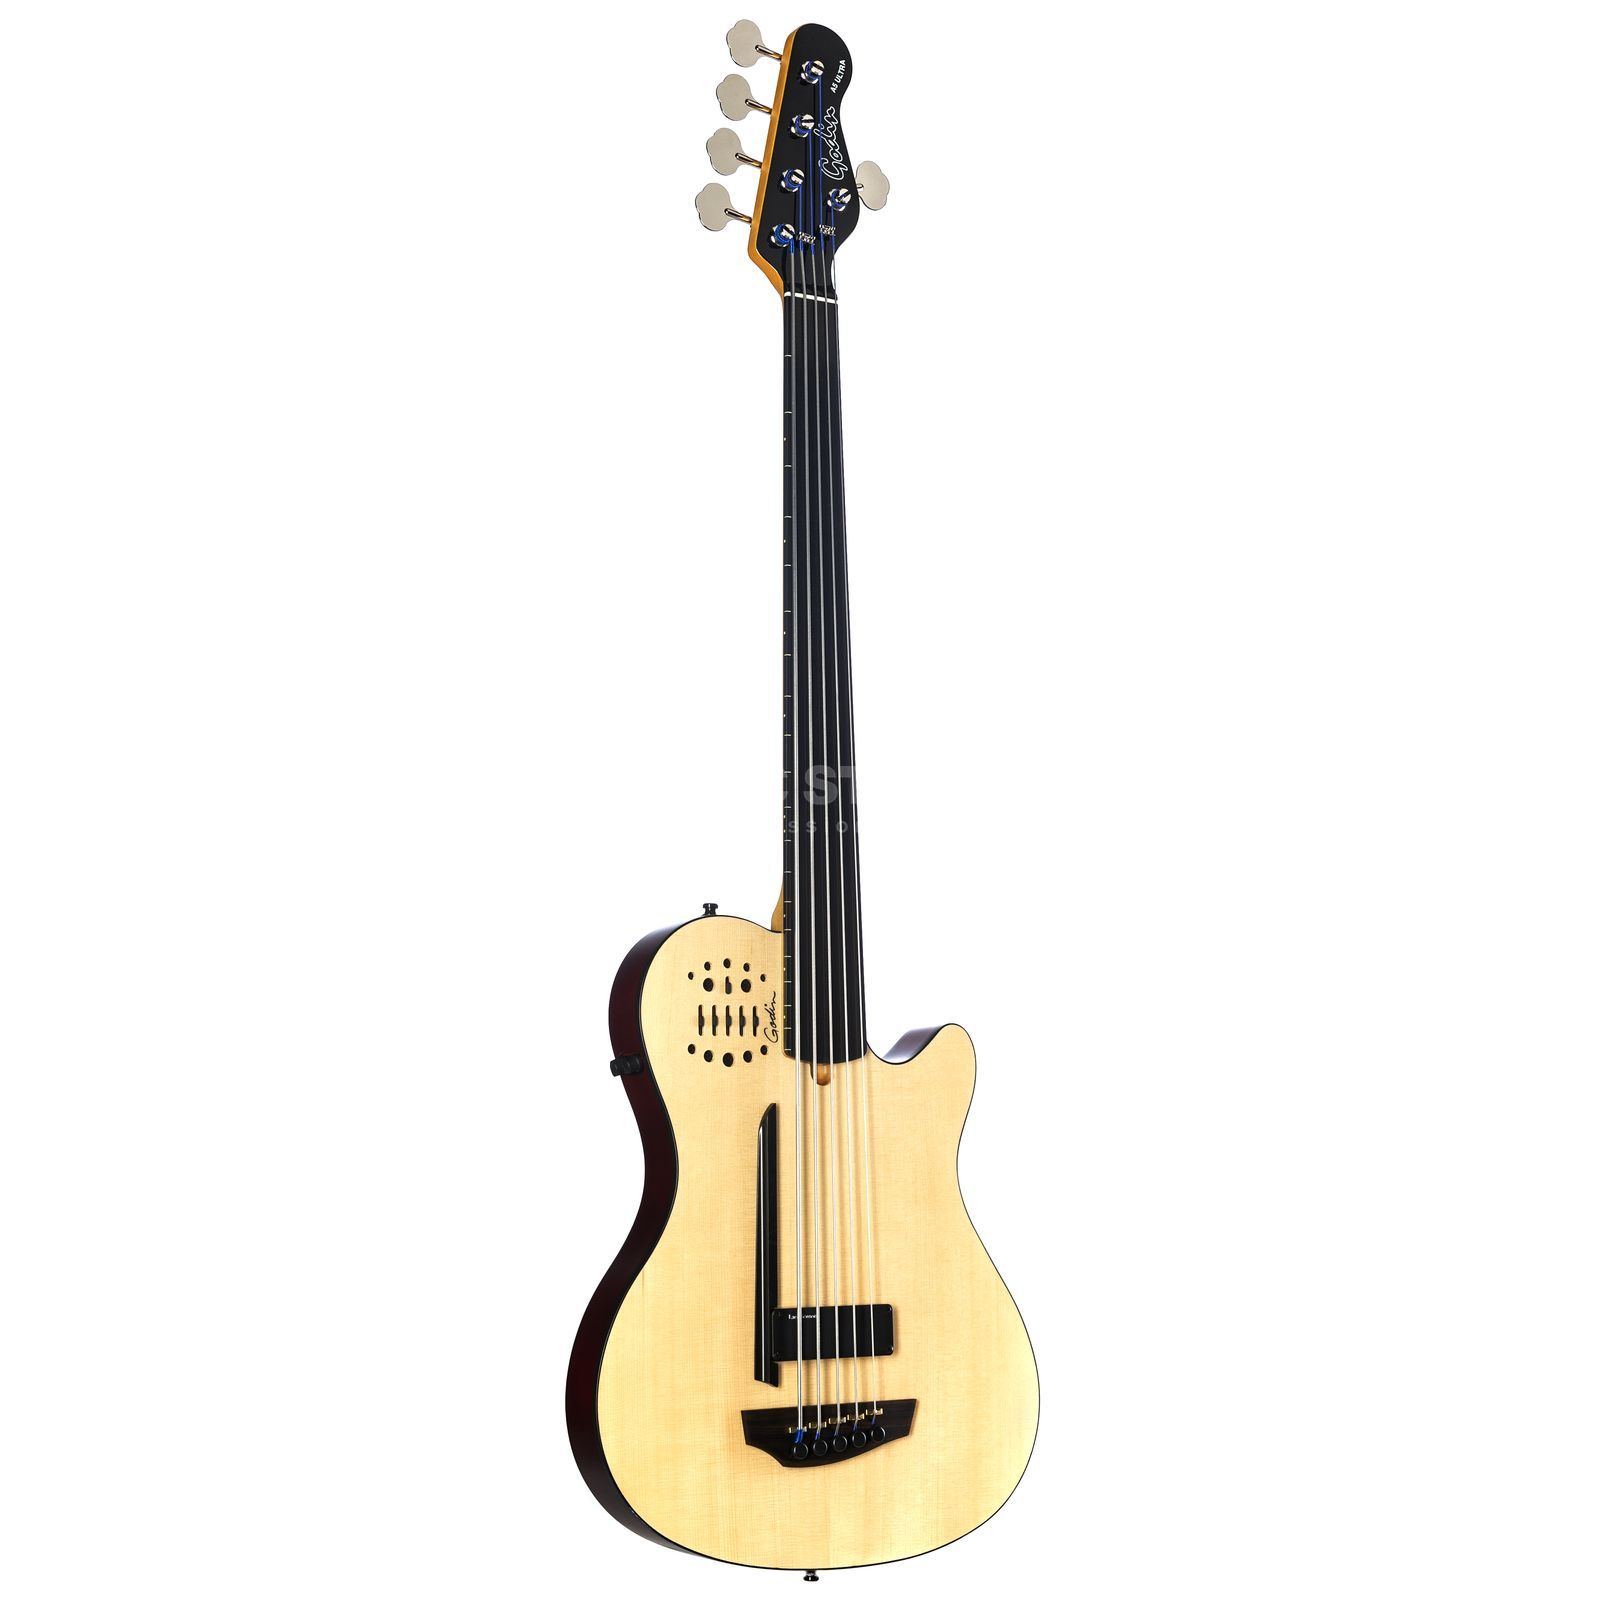 Godin A5 Ultra Fretless SA Natural Semi- Gloss Image du produit